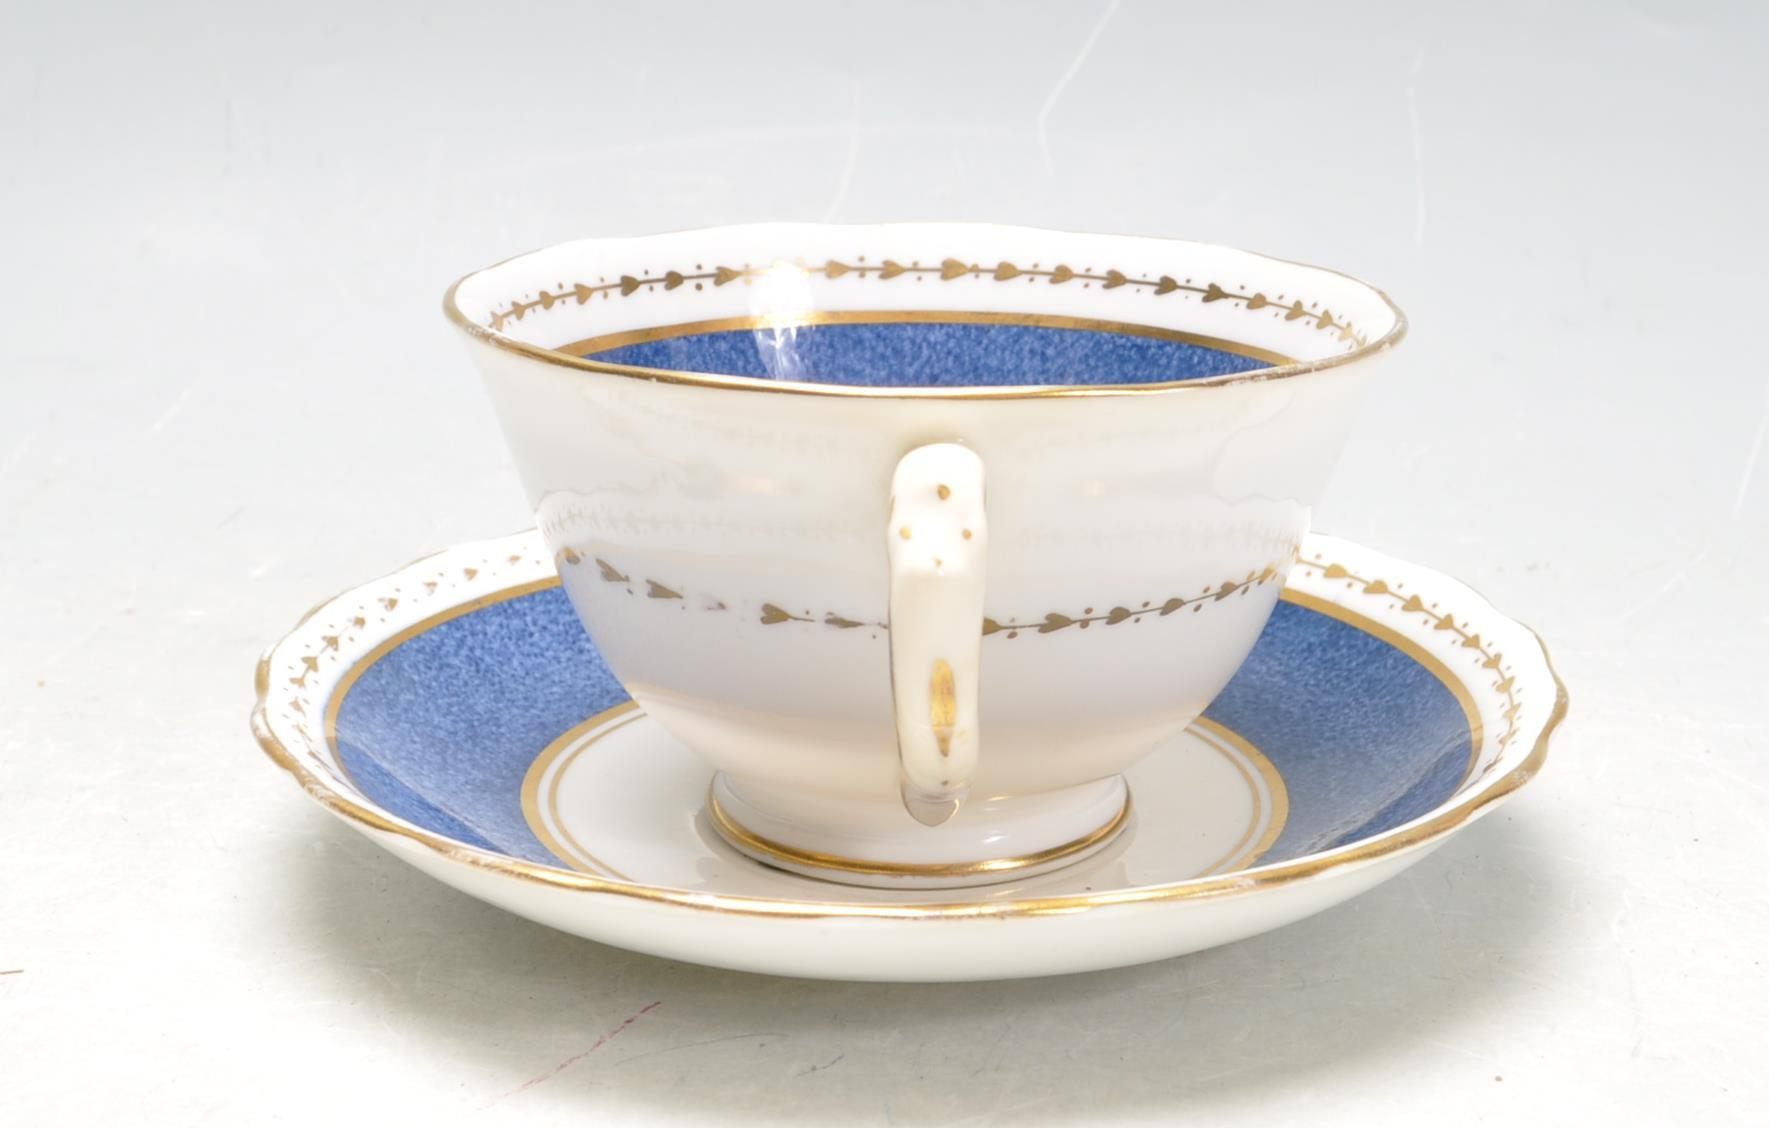 COLLECTION OF NEW CHELSEA STAFFORDSHIRE TEA SERVICE. - Image 3 of 4